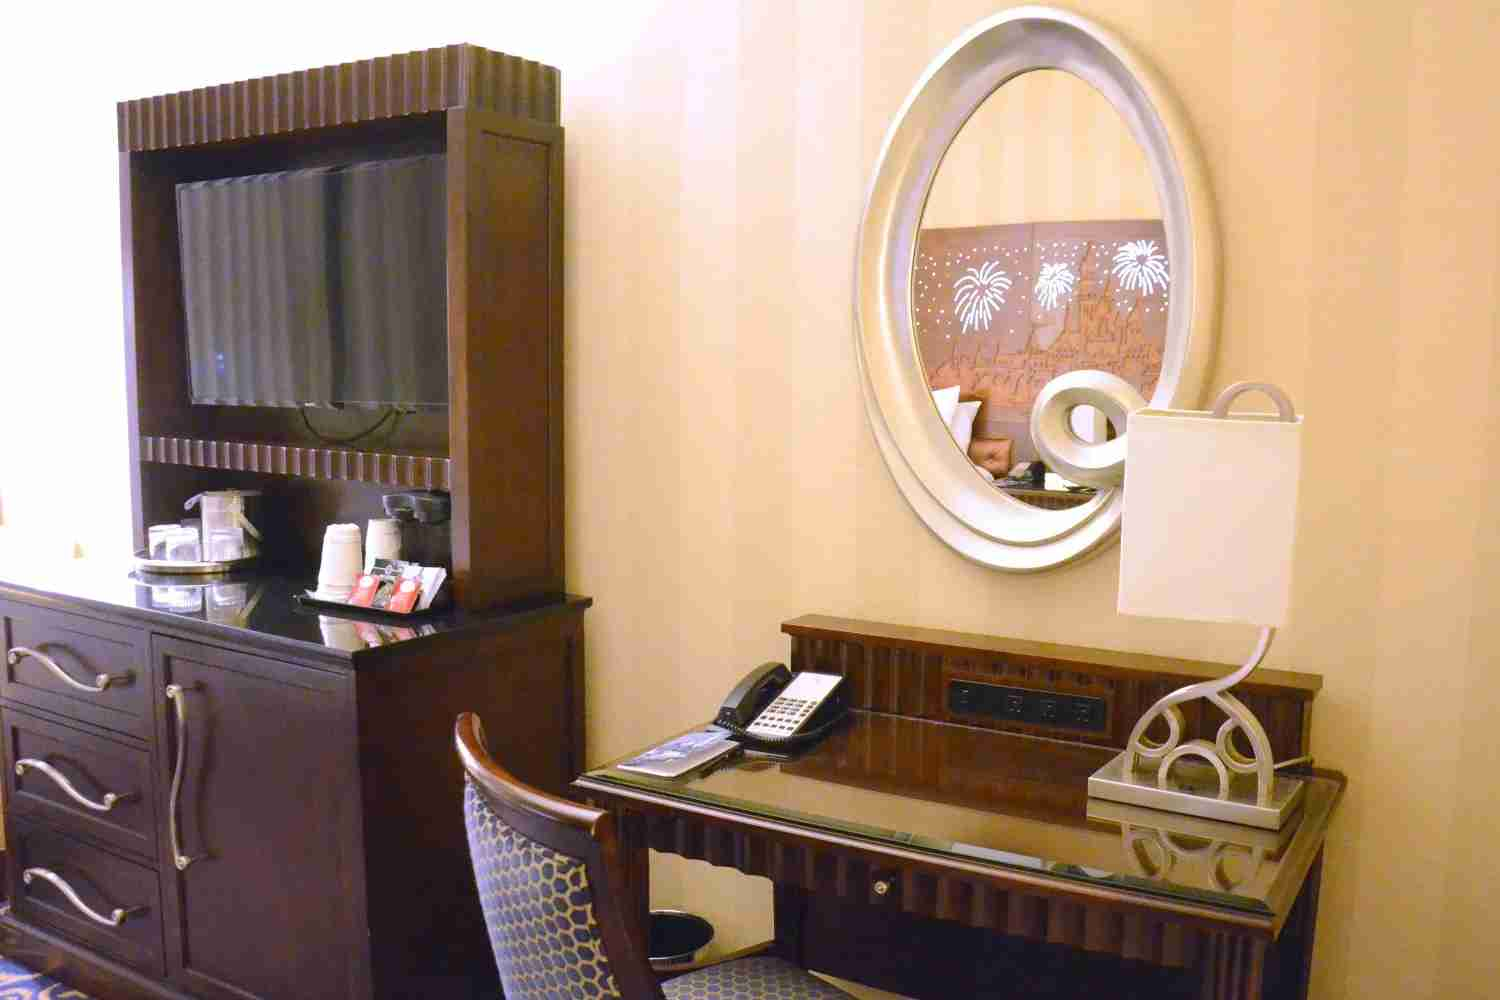 Disneyland Hotel Review - Desk and Dresser